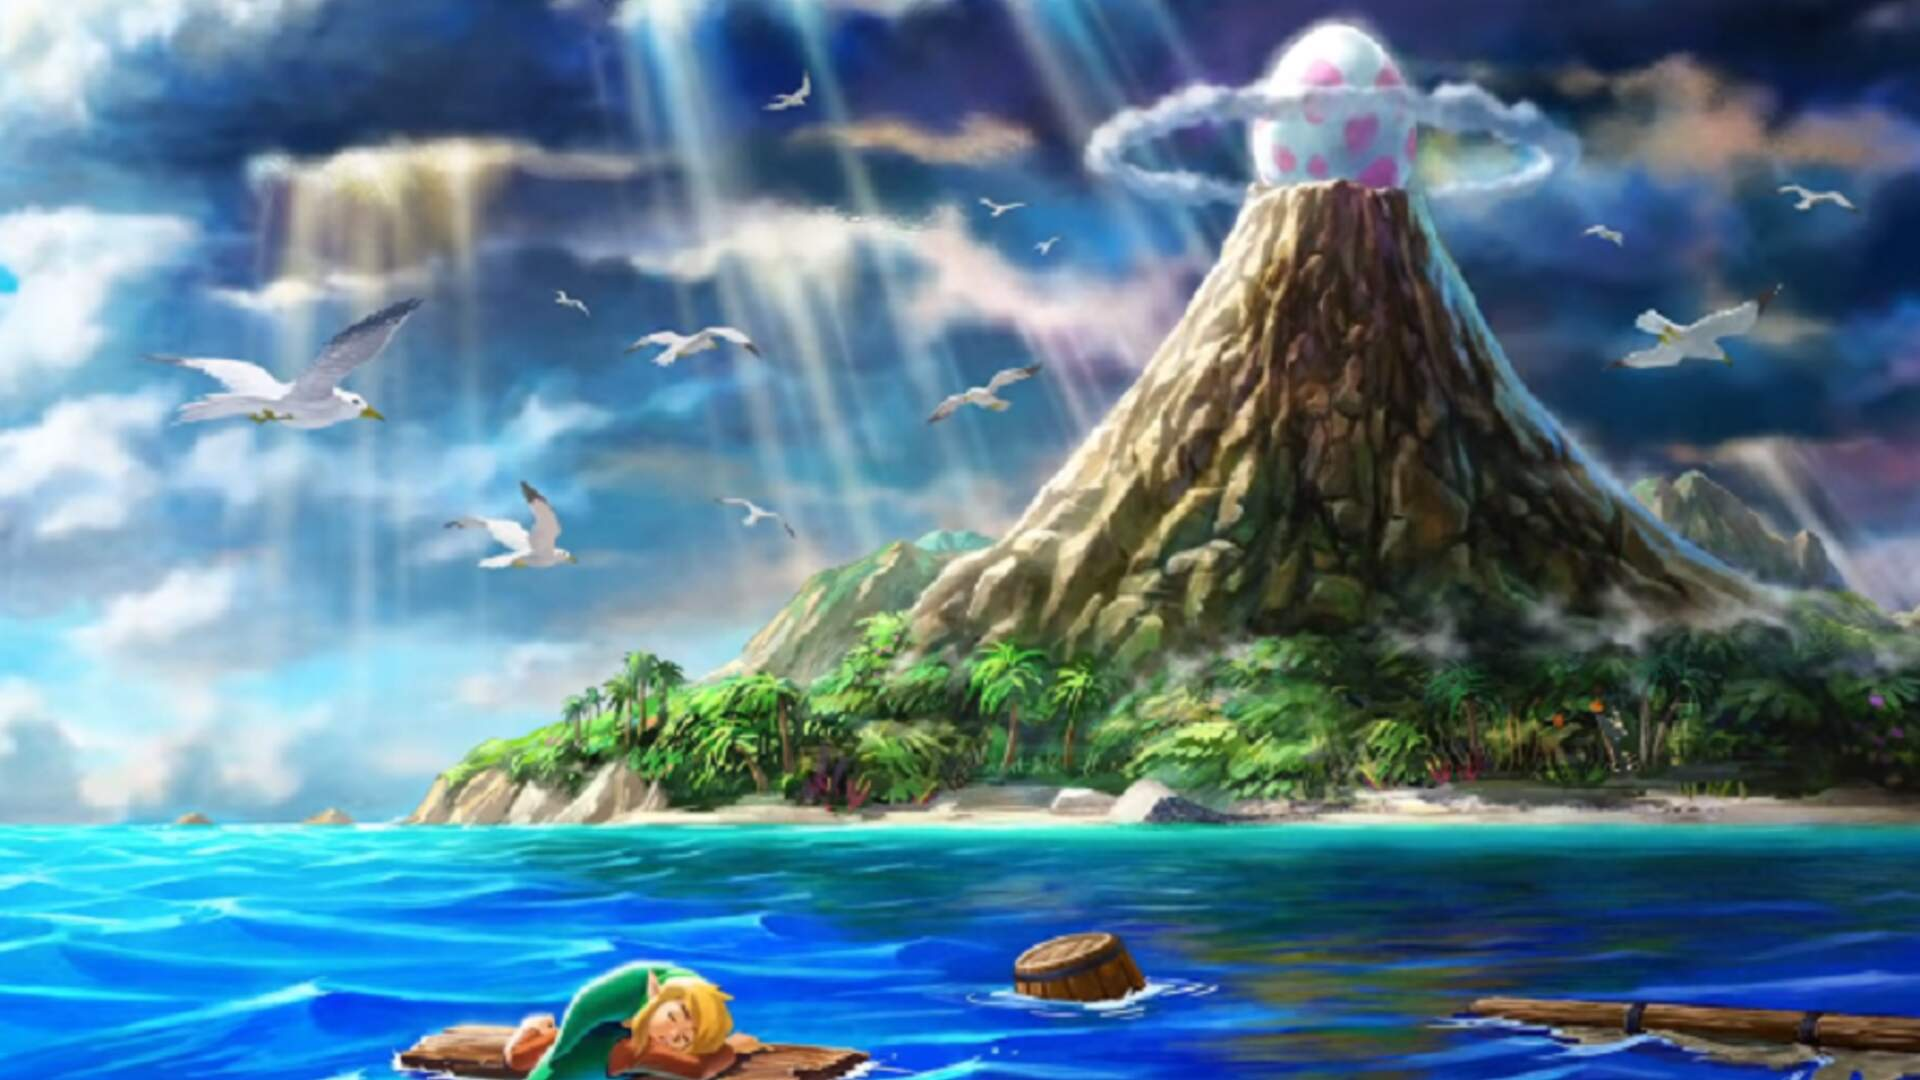 Why Didn't The Legend of Zelda: Link's Awakening Switch Remake Follow in the Footsteps of A Link Between Worlds?